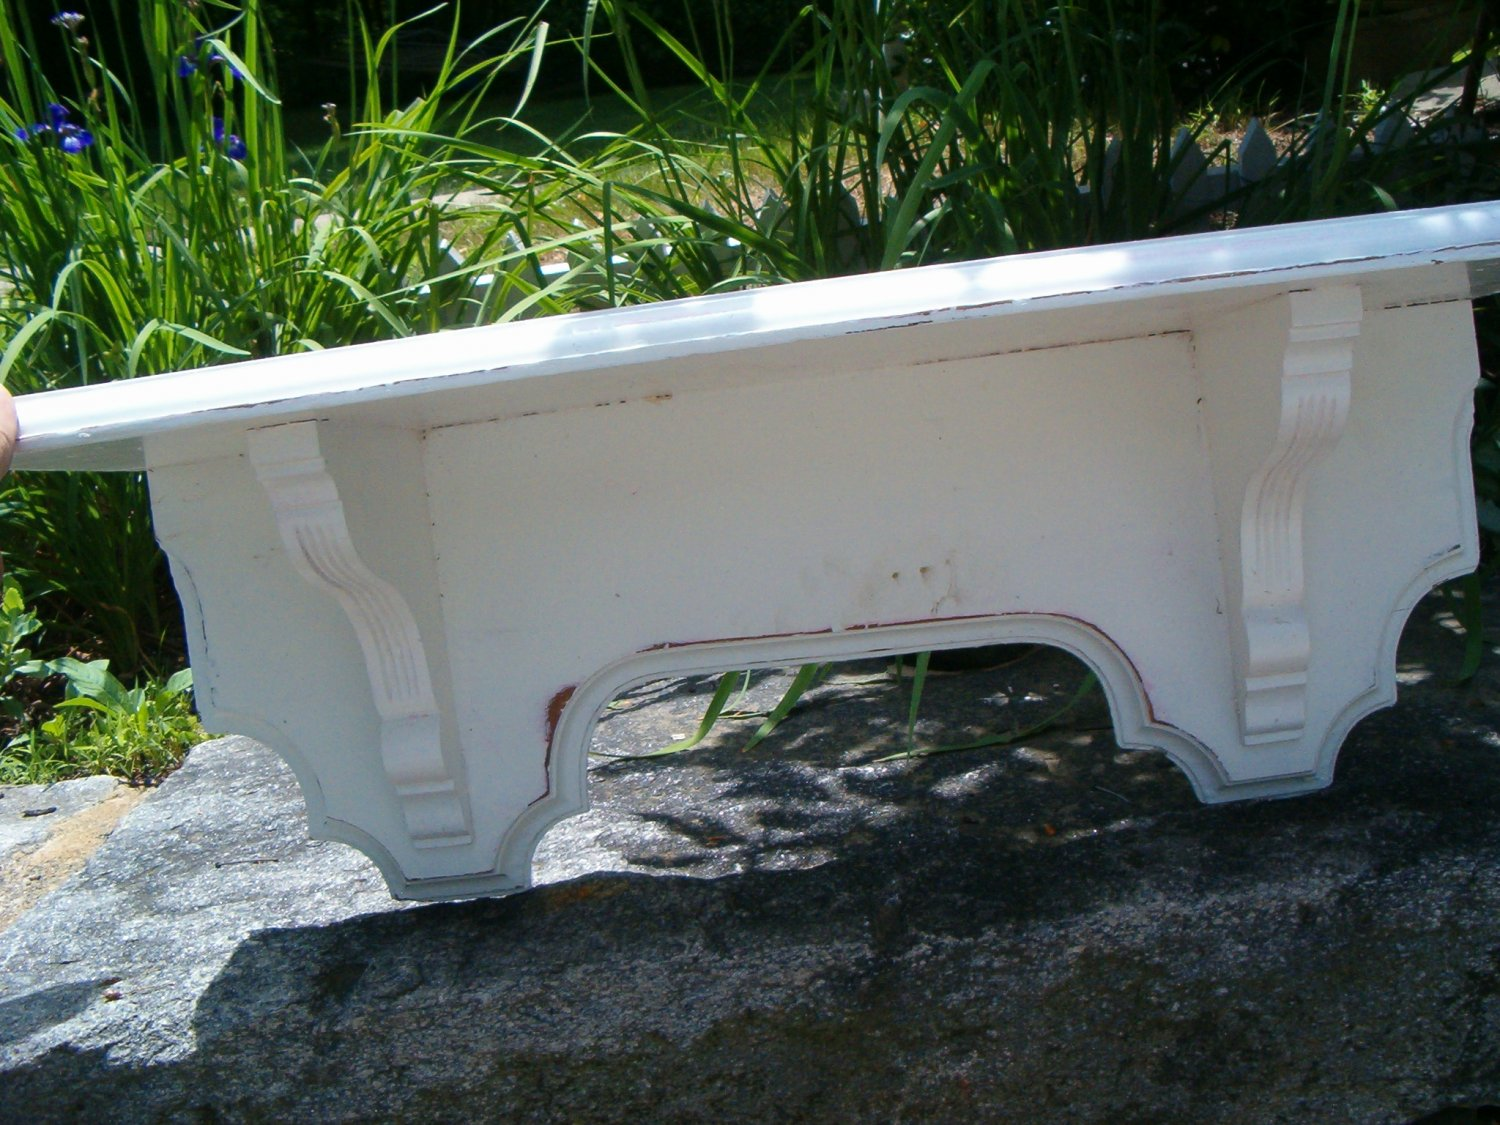 Decorative Wall Shelf from 40's or 50's